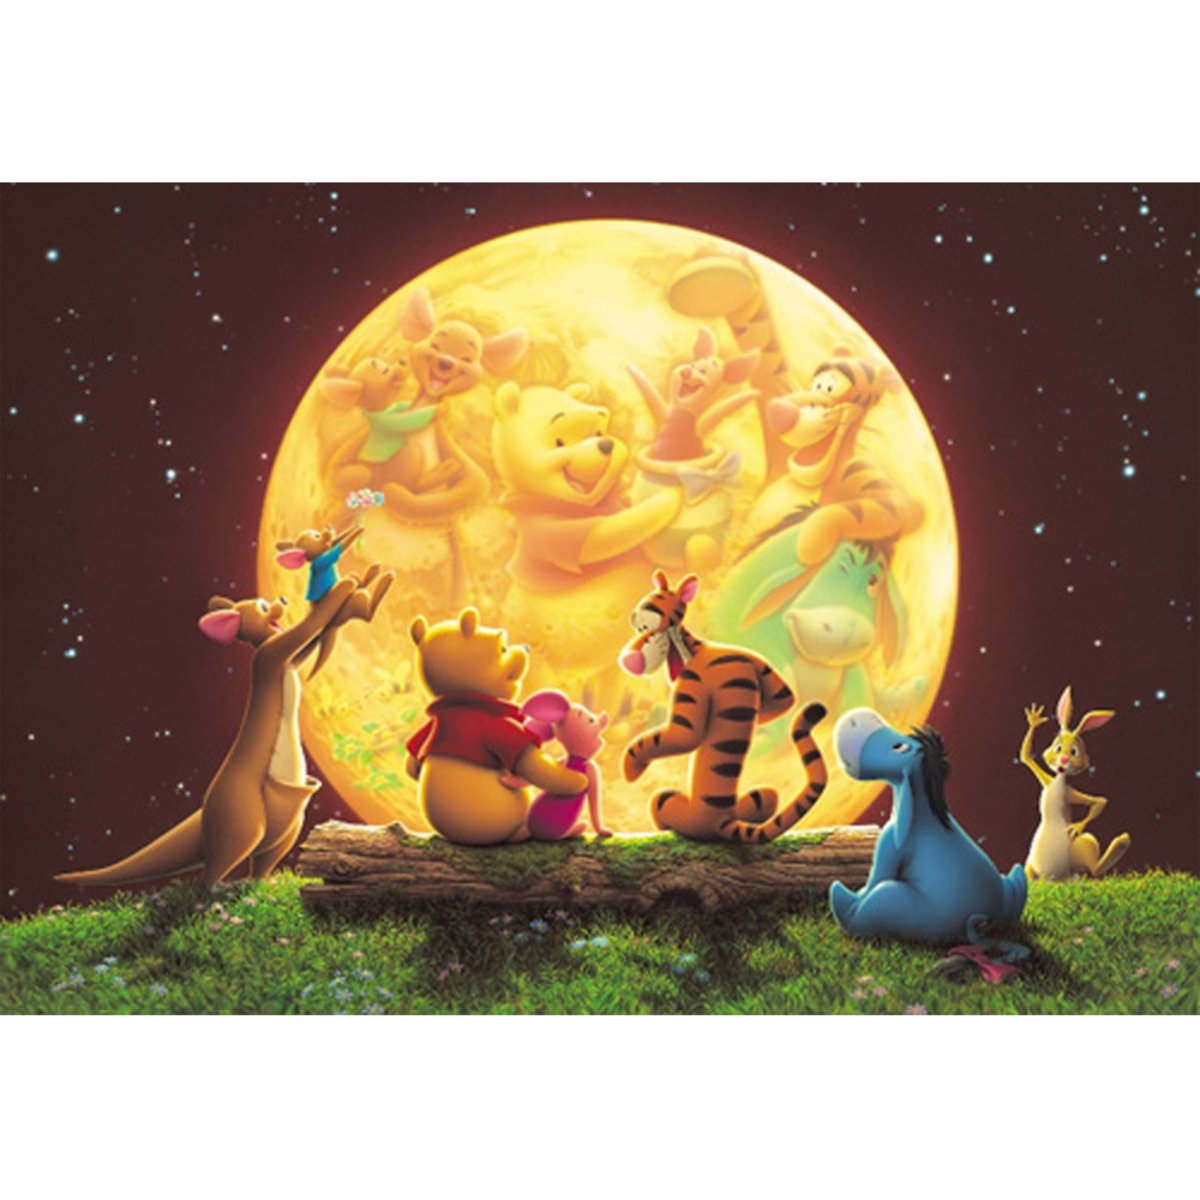 DSG-266-733 266 pieces puzzle Winne the Pooh Moon Light (4905823857335) [Licensed by Disney]